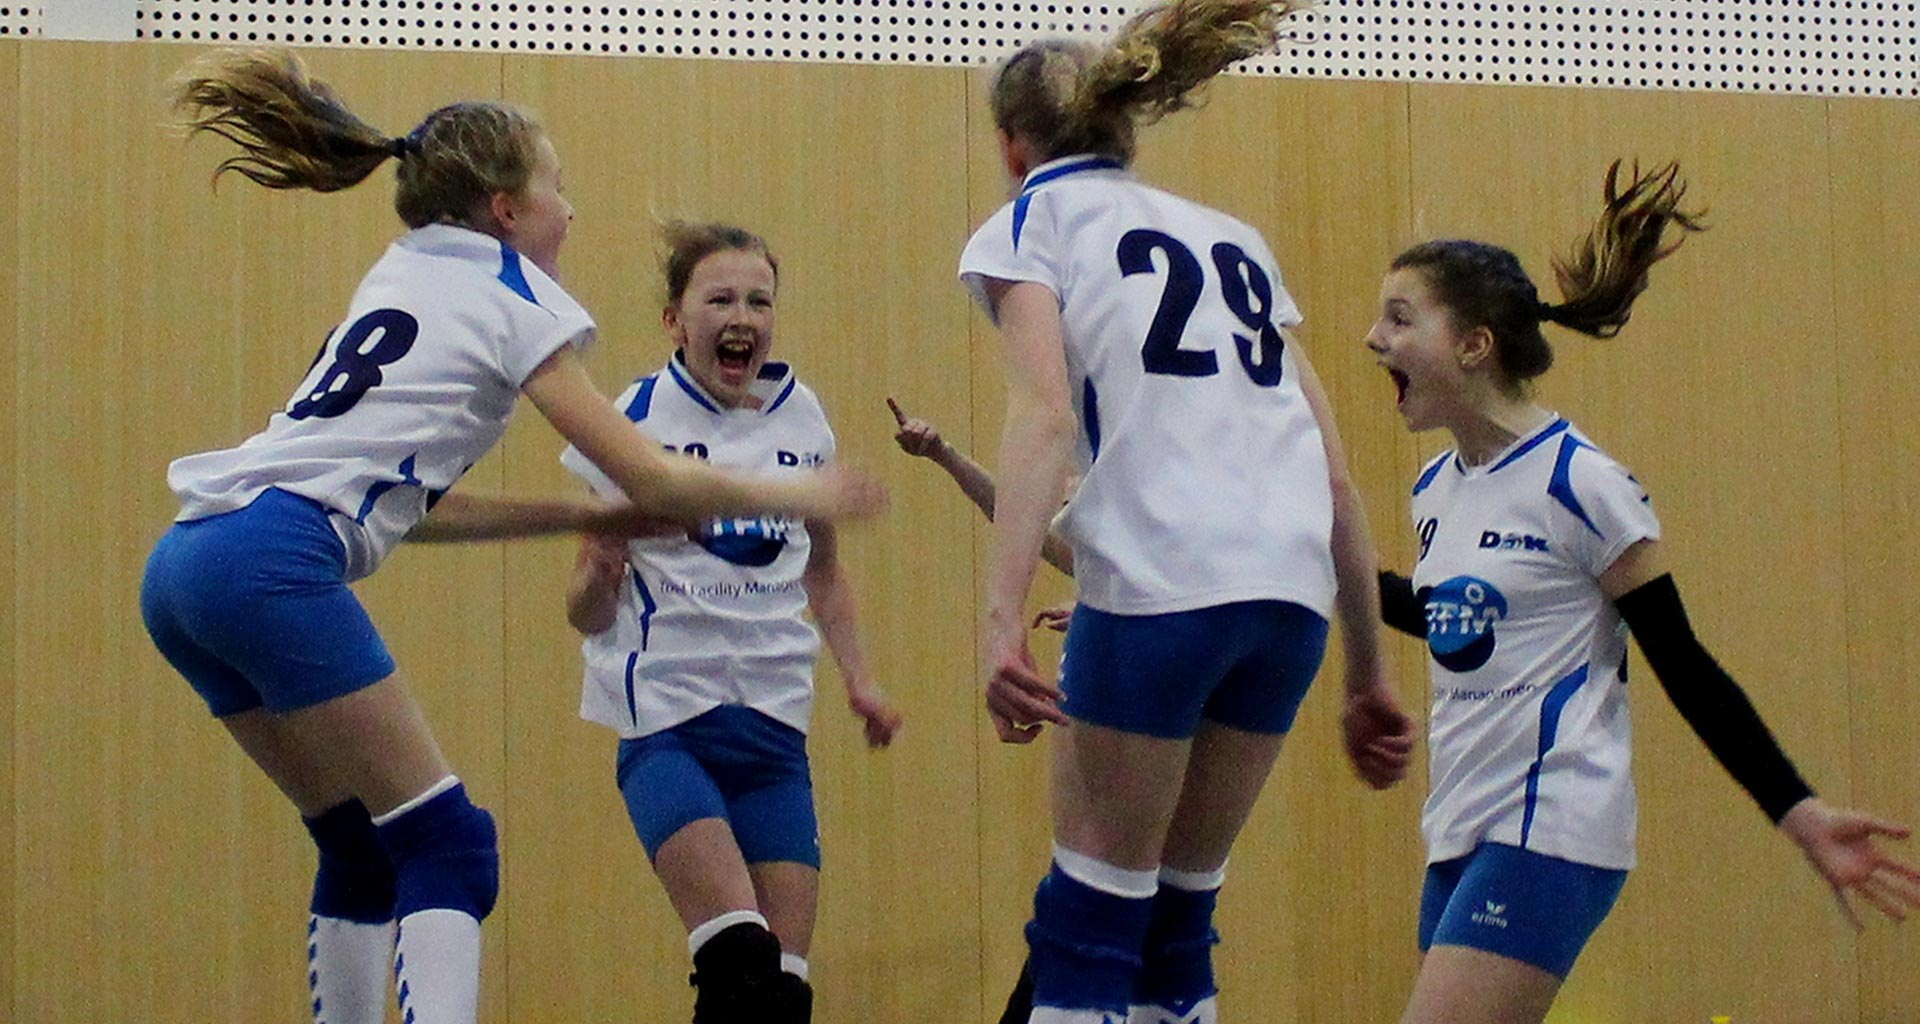 https://www.volleybal-dok.nl/wp-content/uploads/2018/11/header-3.jpg